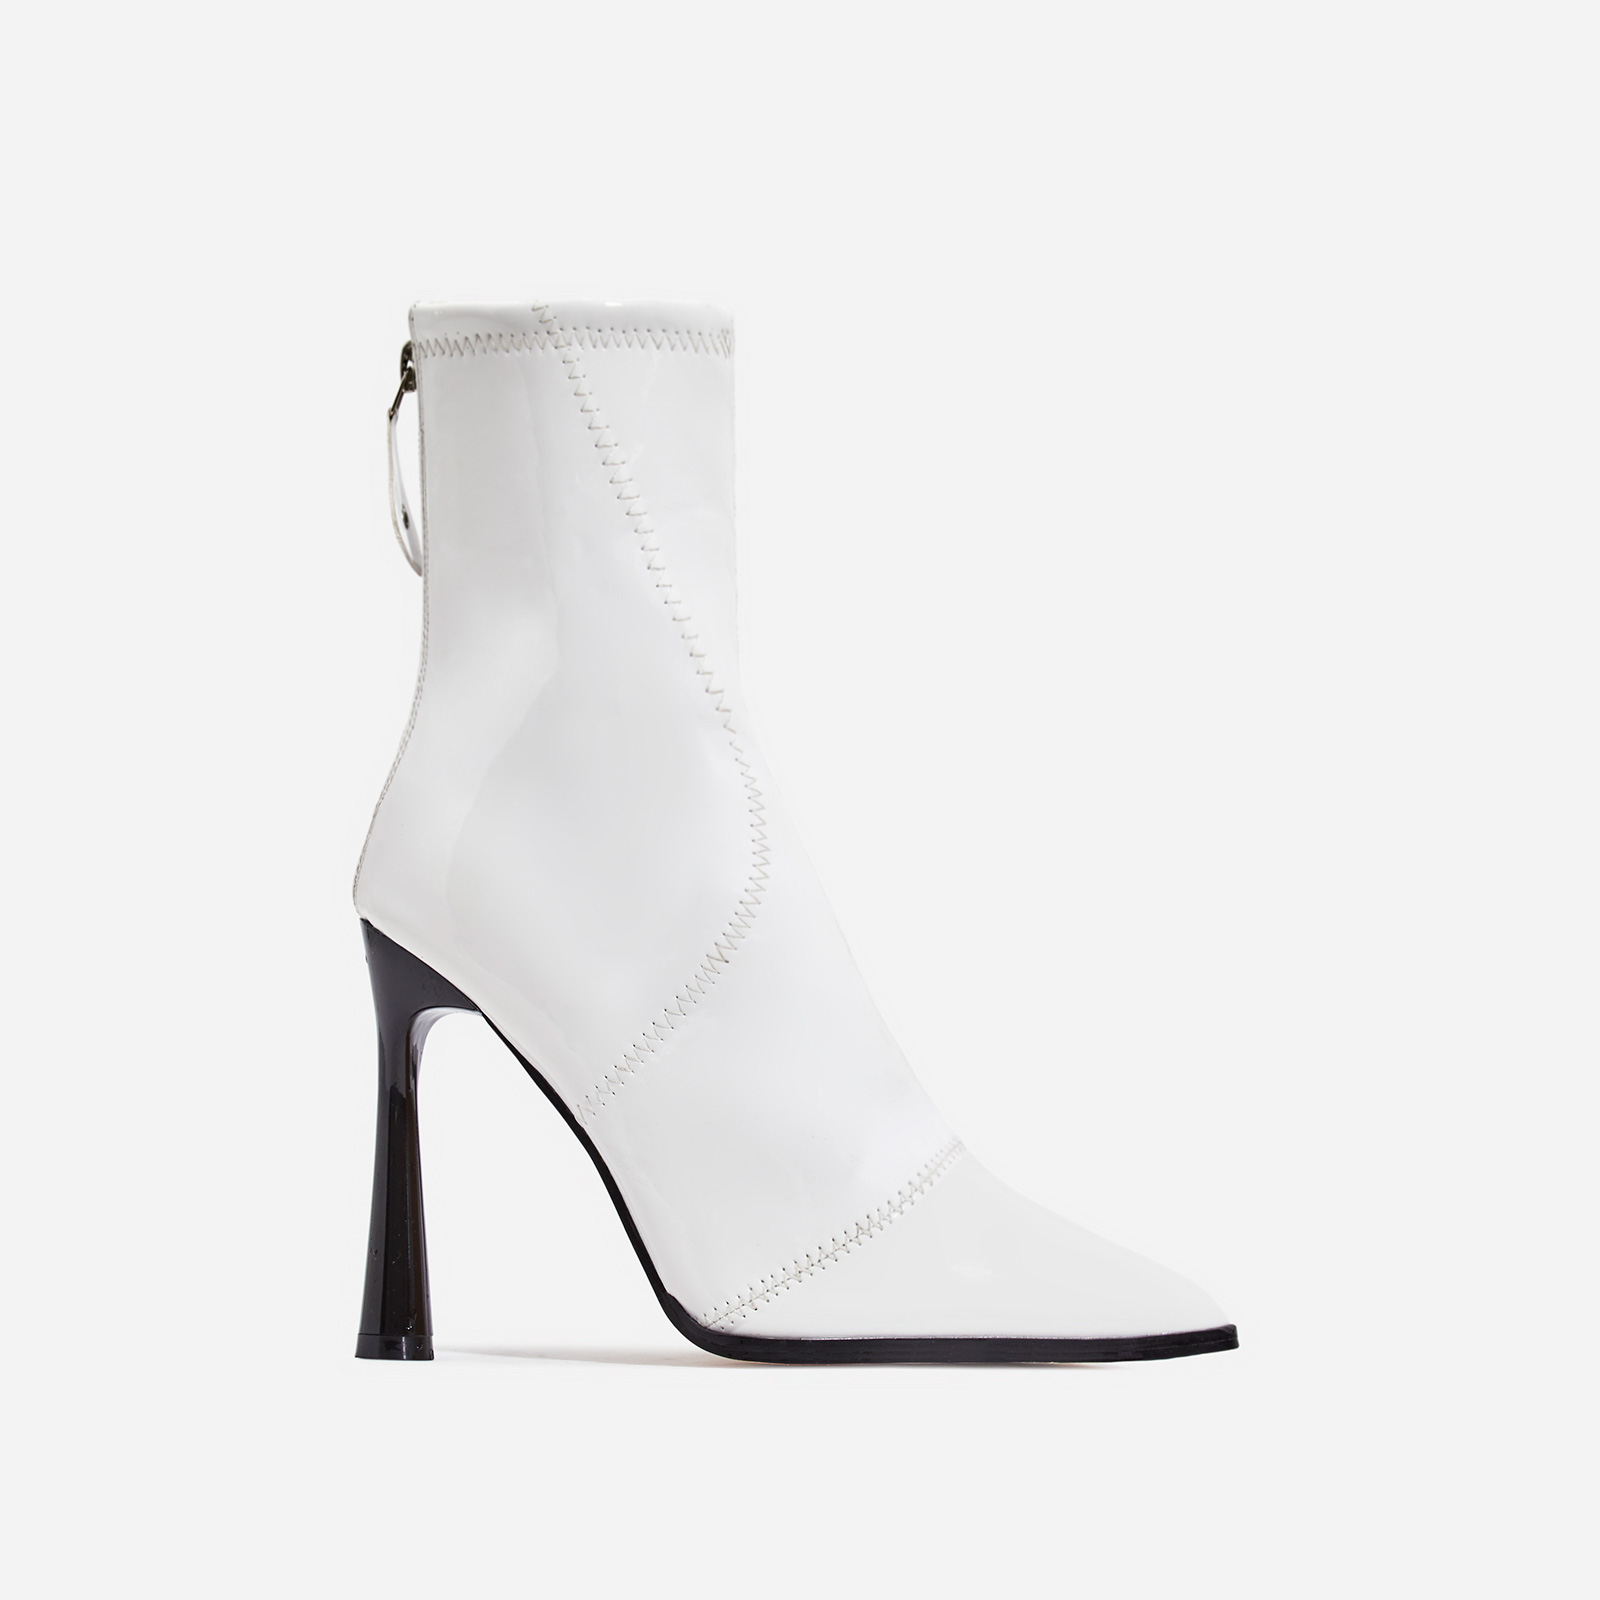 Nolan Curved Heel Ankle Boot In White Patent